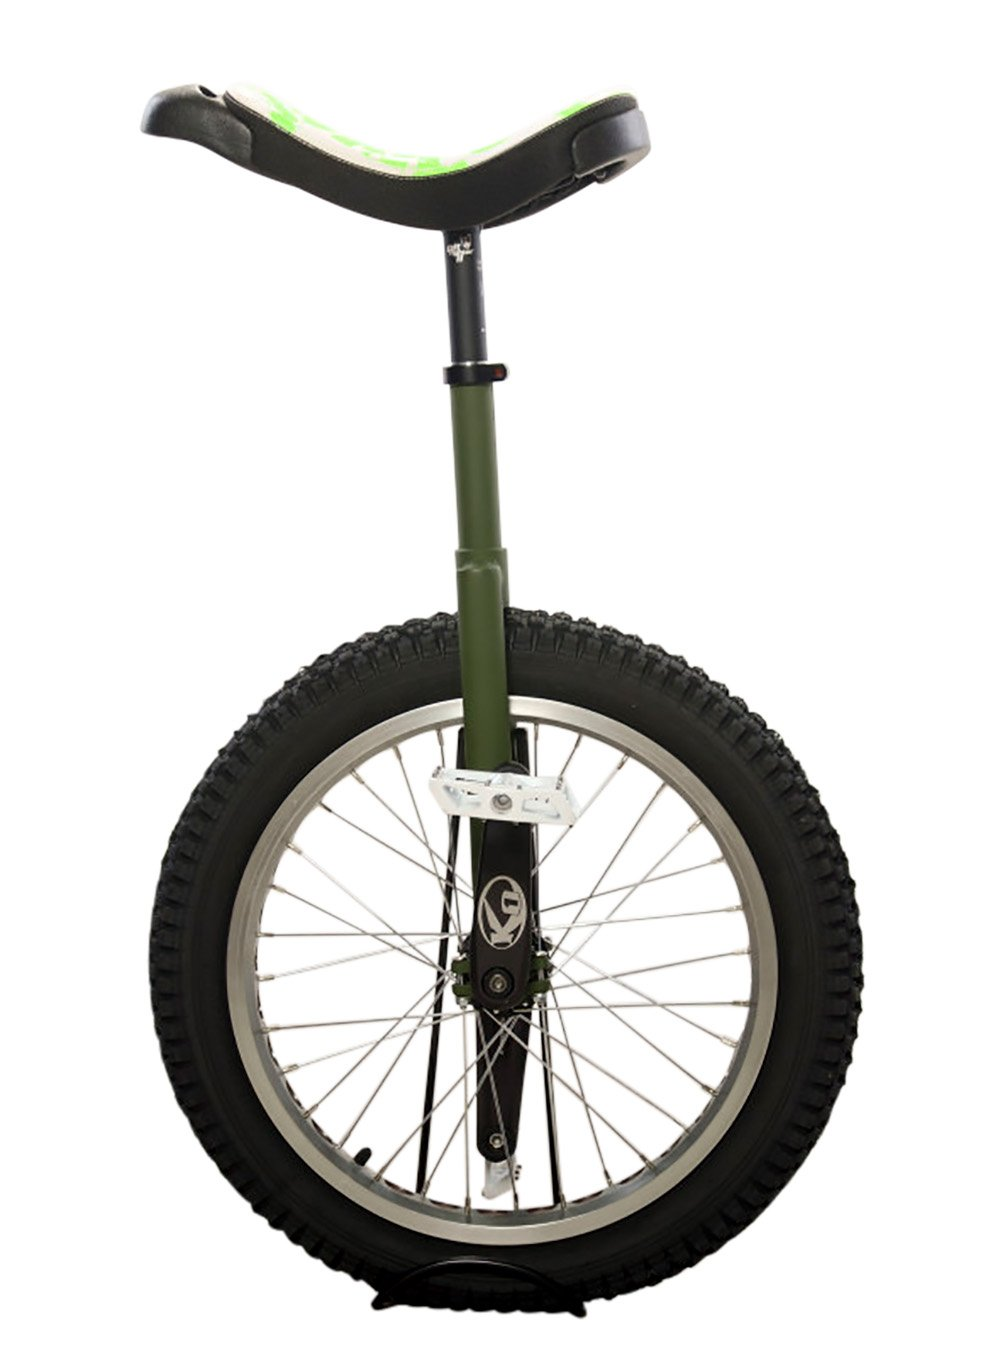 Koxx Fluo 20 Trials Unicycle, Black/Green with Silver Rims and White Pedals by Koxx